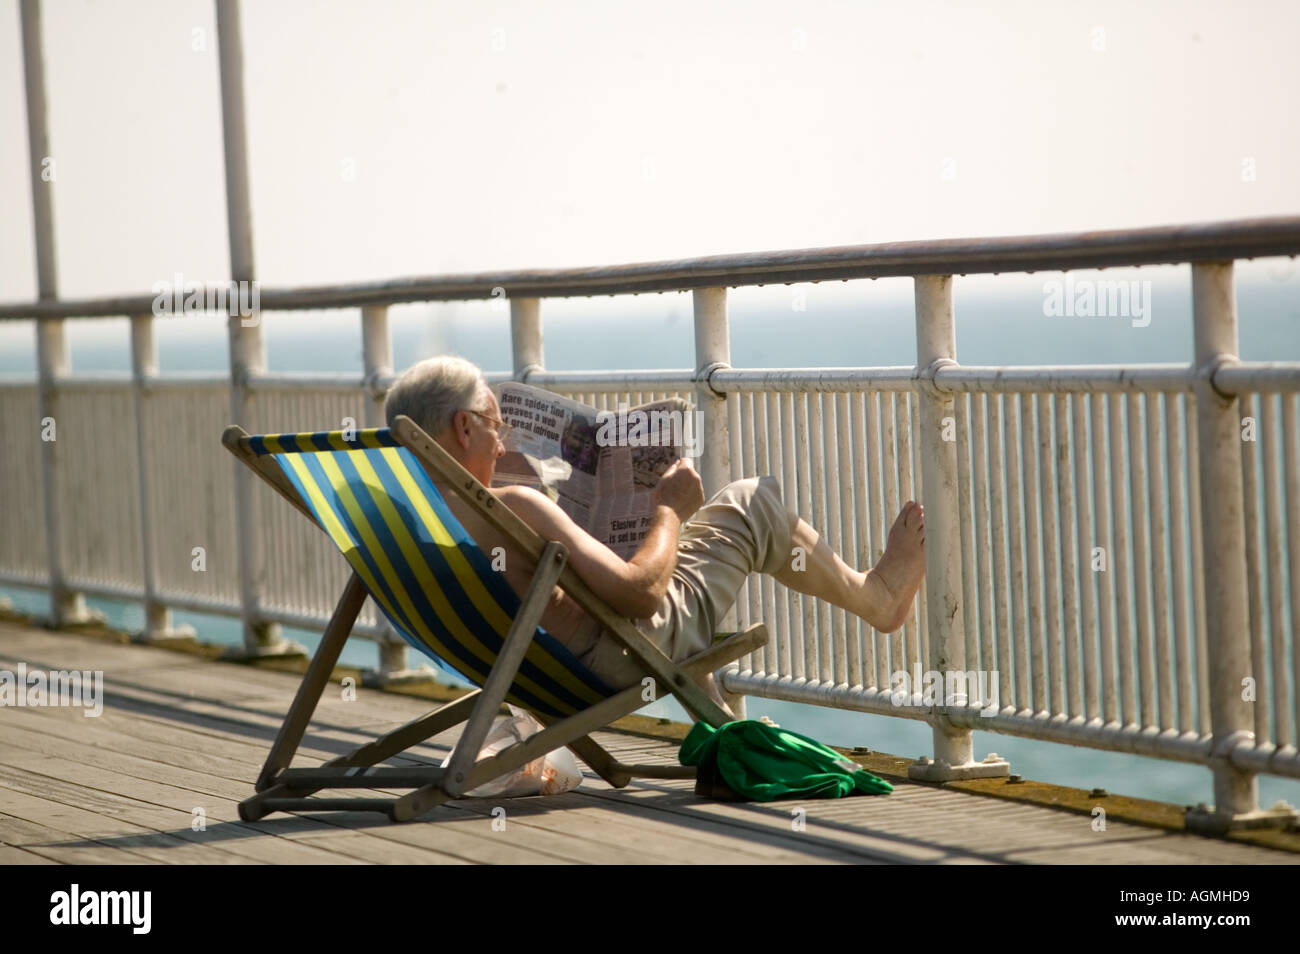 Sun bathing in deck chair on the pier boscomb - Stock Image